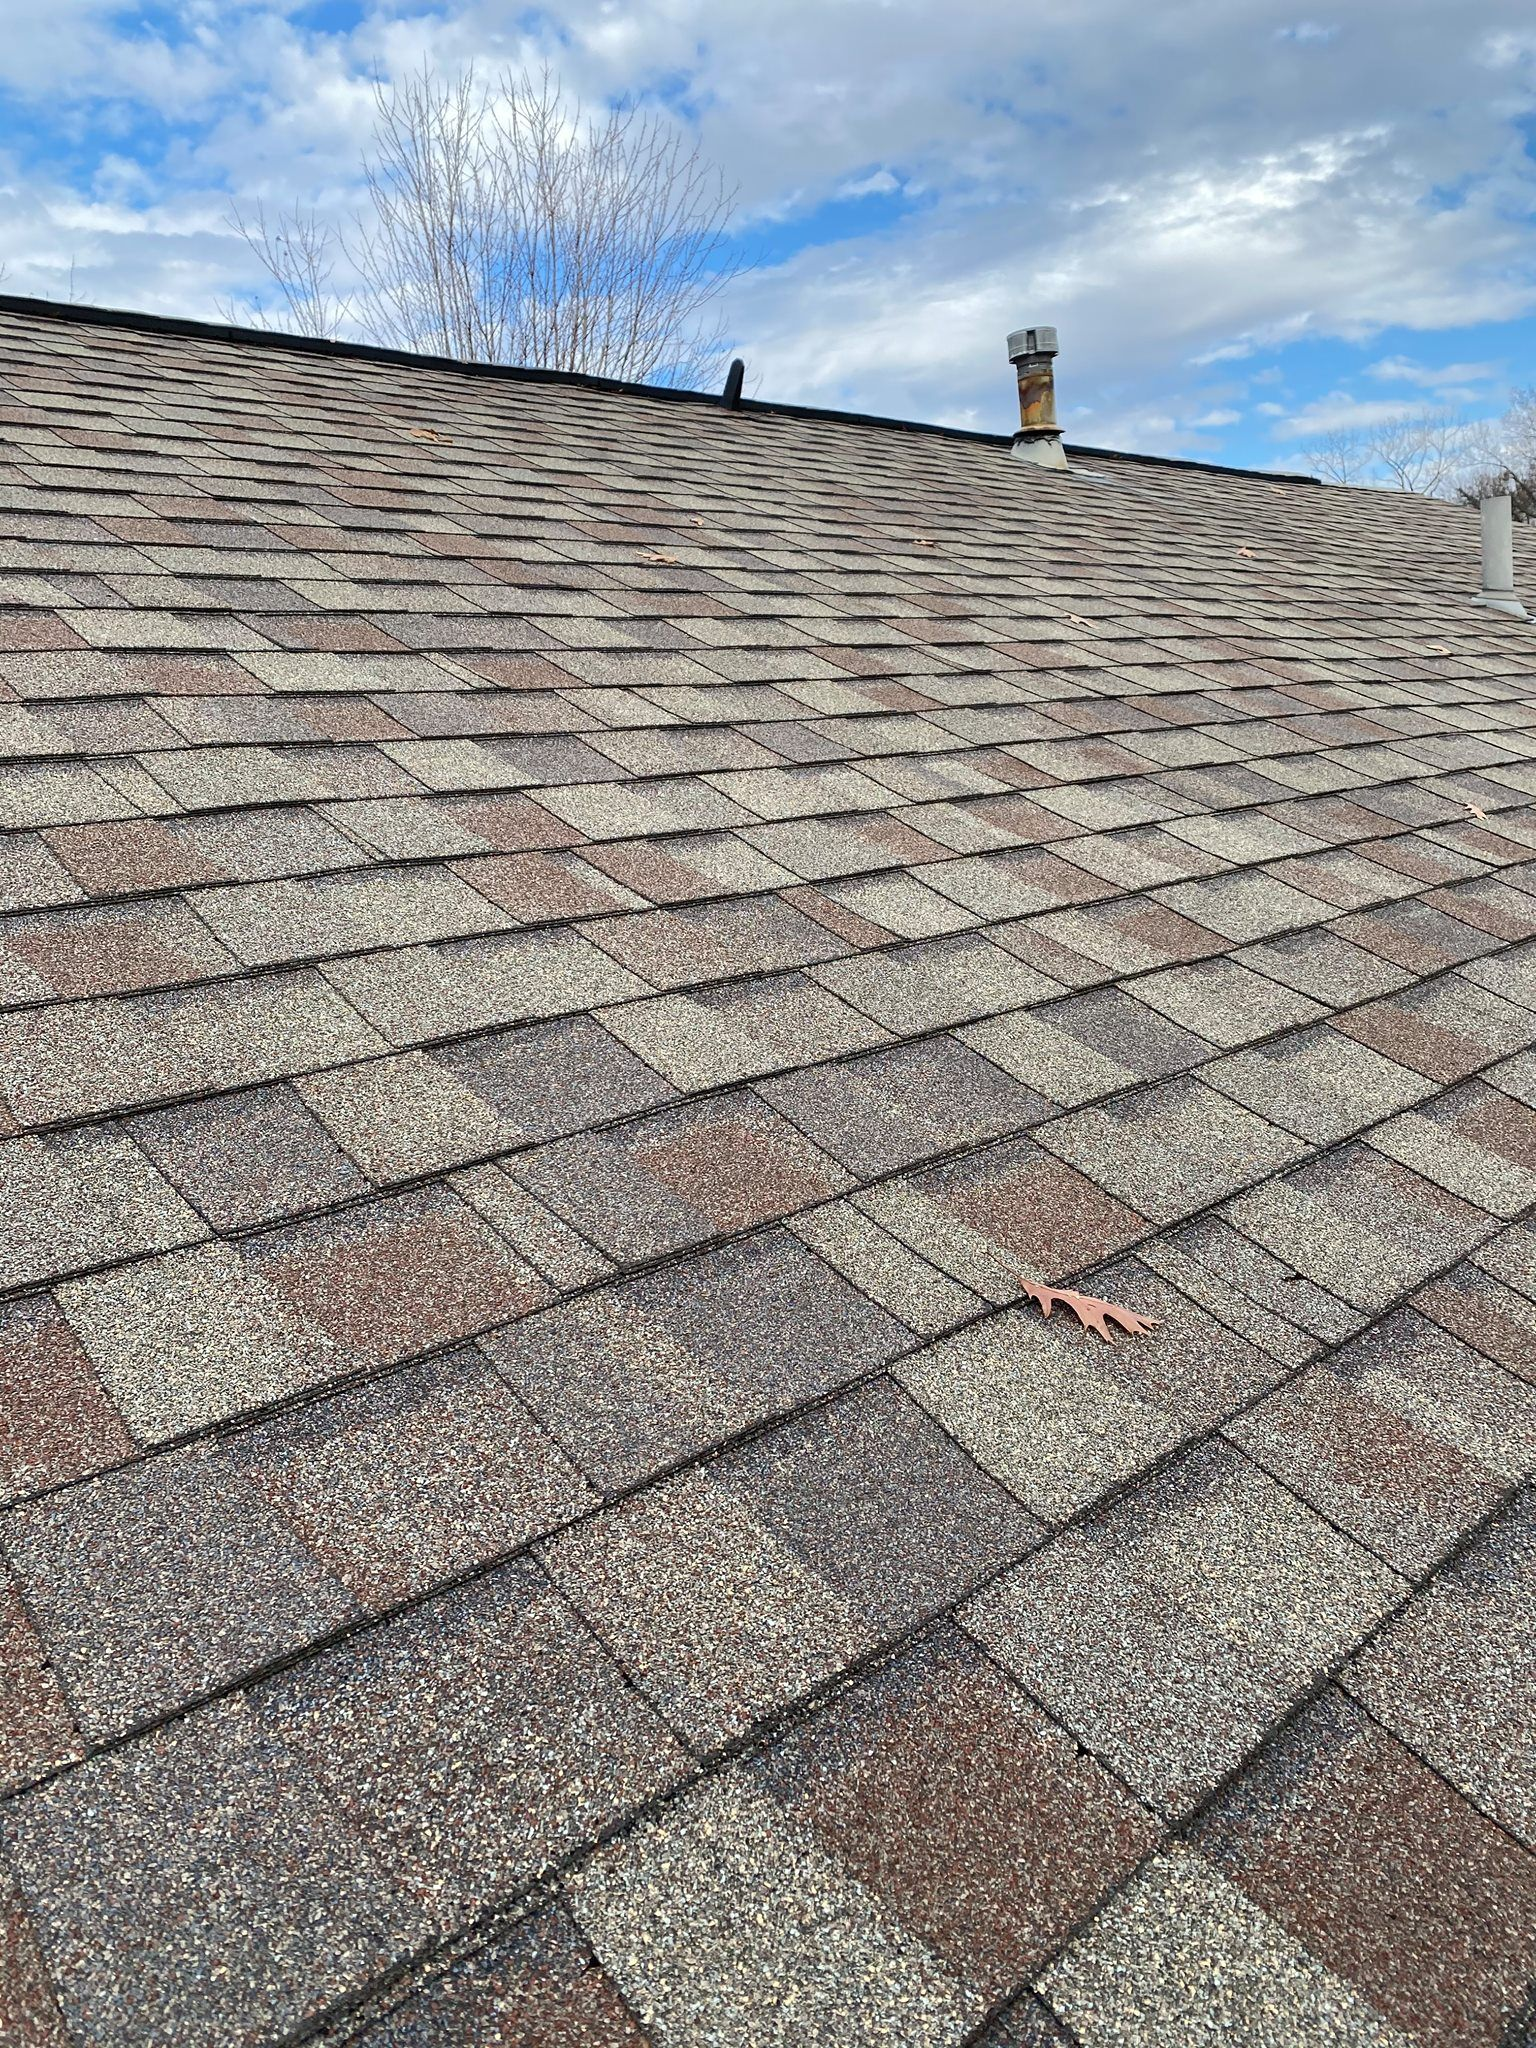 Roofing Materials For Sale